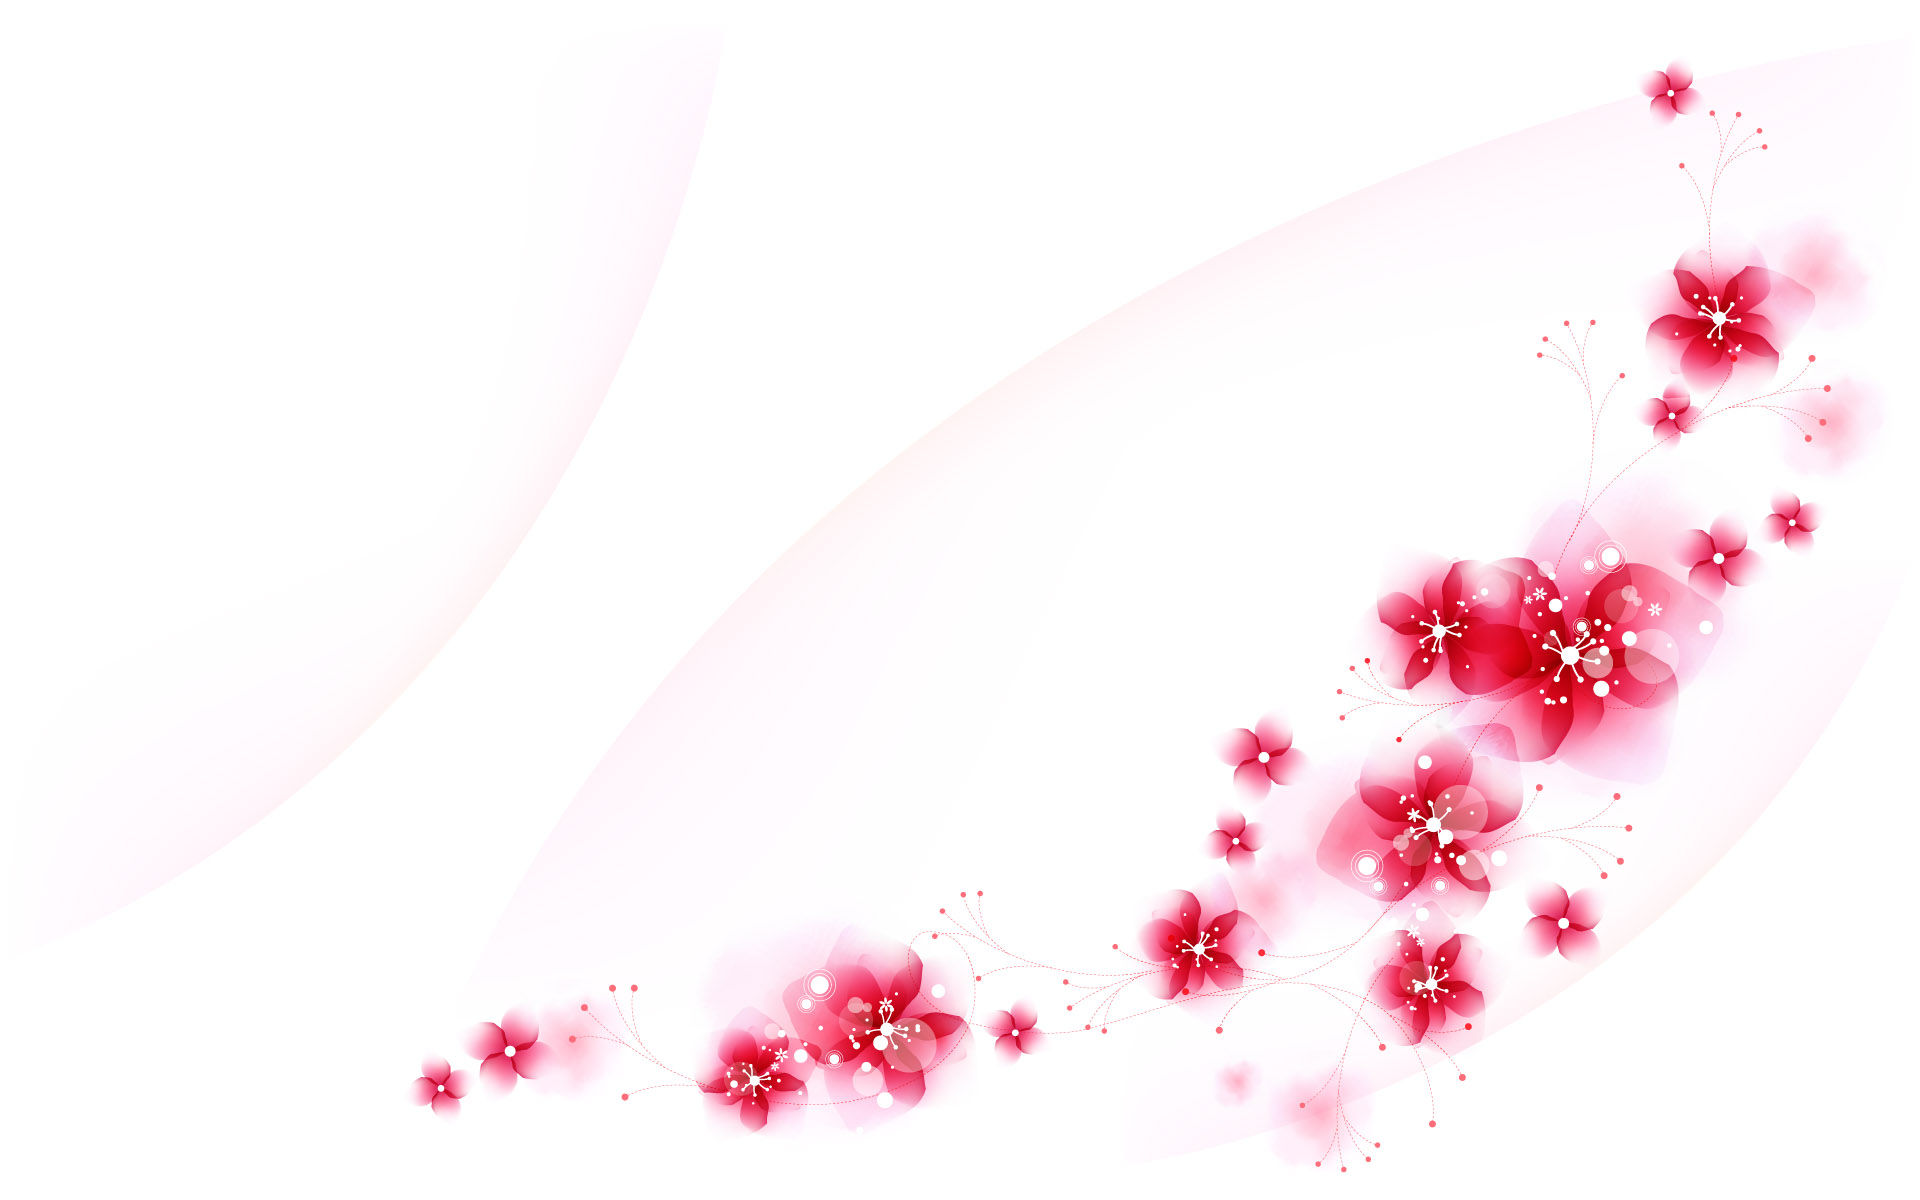 Background color images